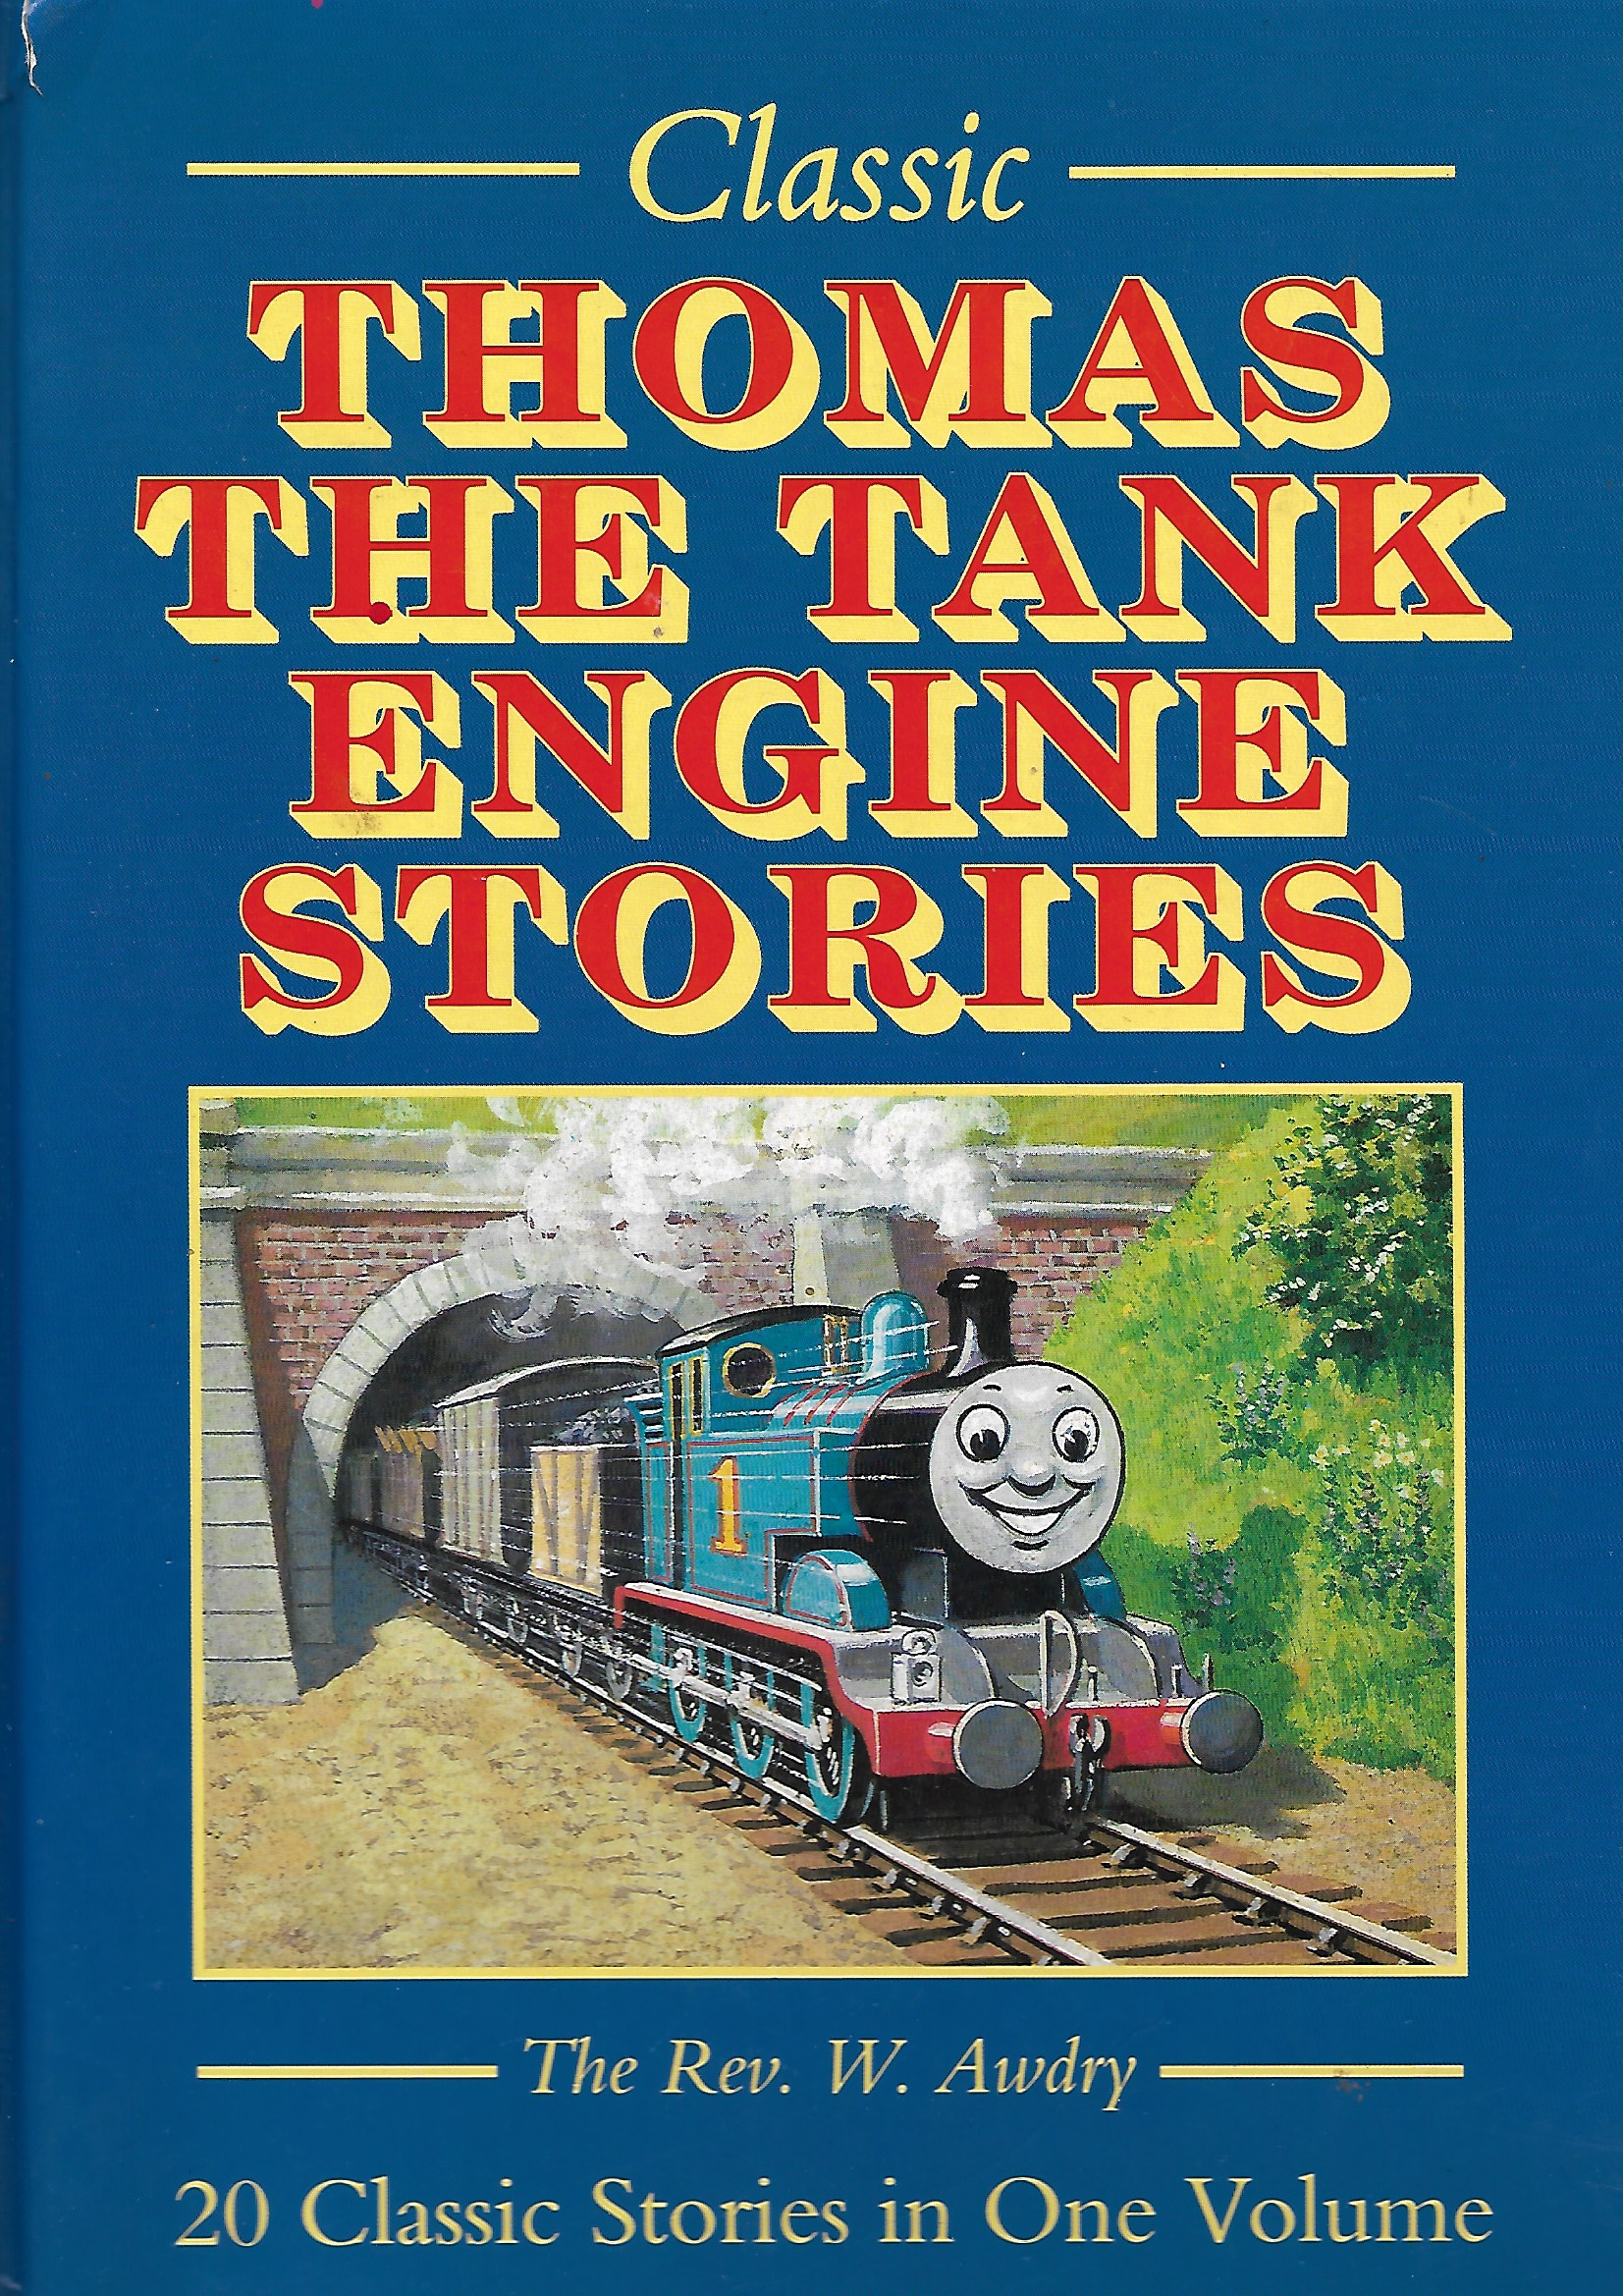 Classic Thomas The Tank Engine Stories